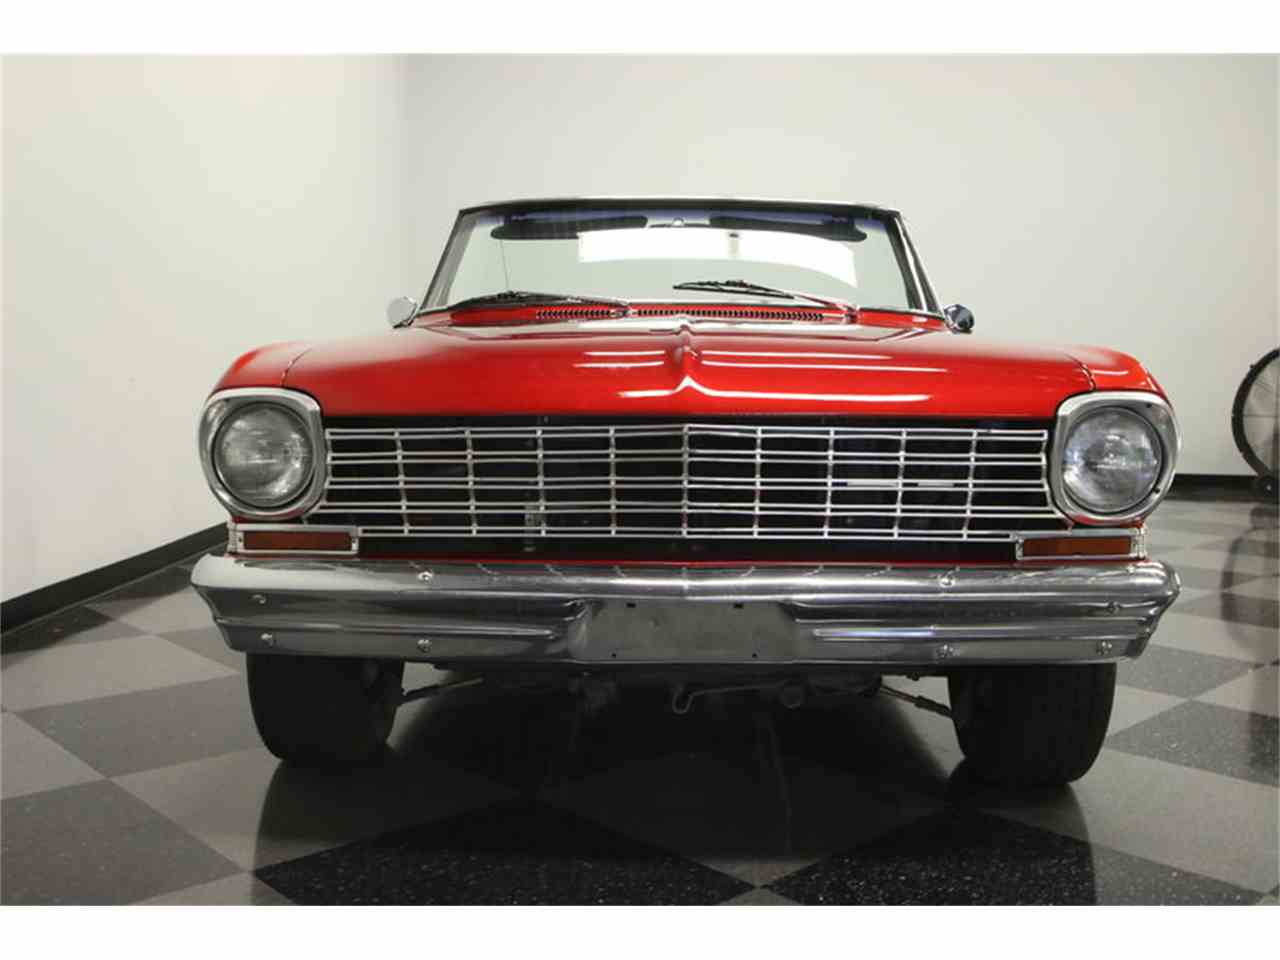 Chevy Dealers Tampa >> 1963 Chevrolet Chevy II Nova for Sale | ClassicCars.com | CC-1082157